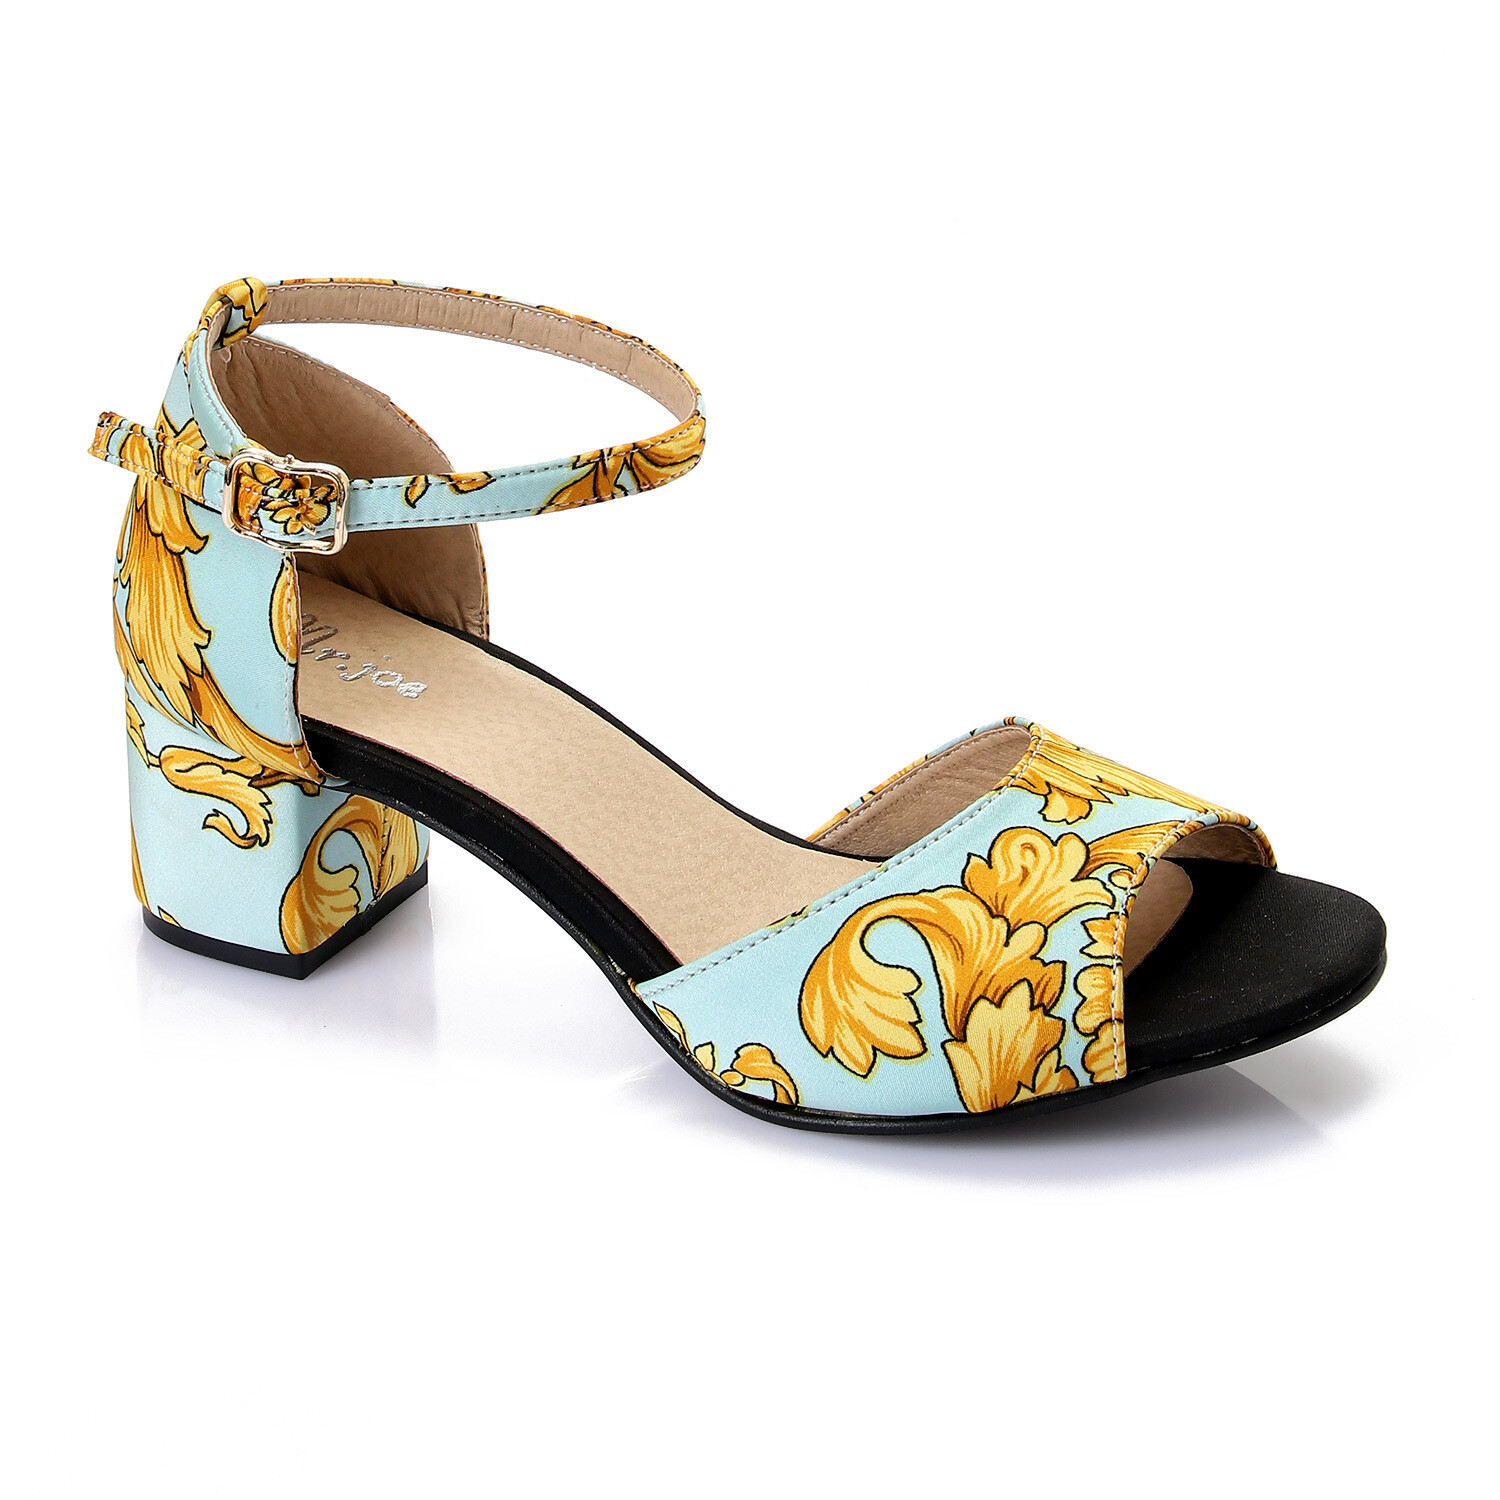 3346 Sandal -light blue*gold